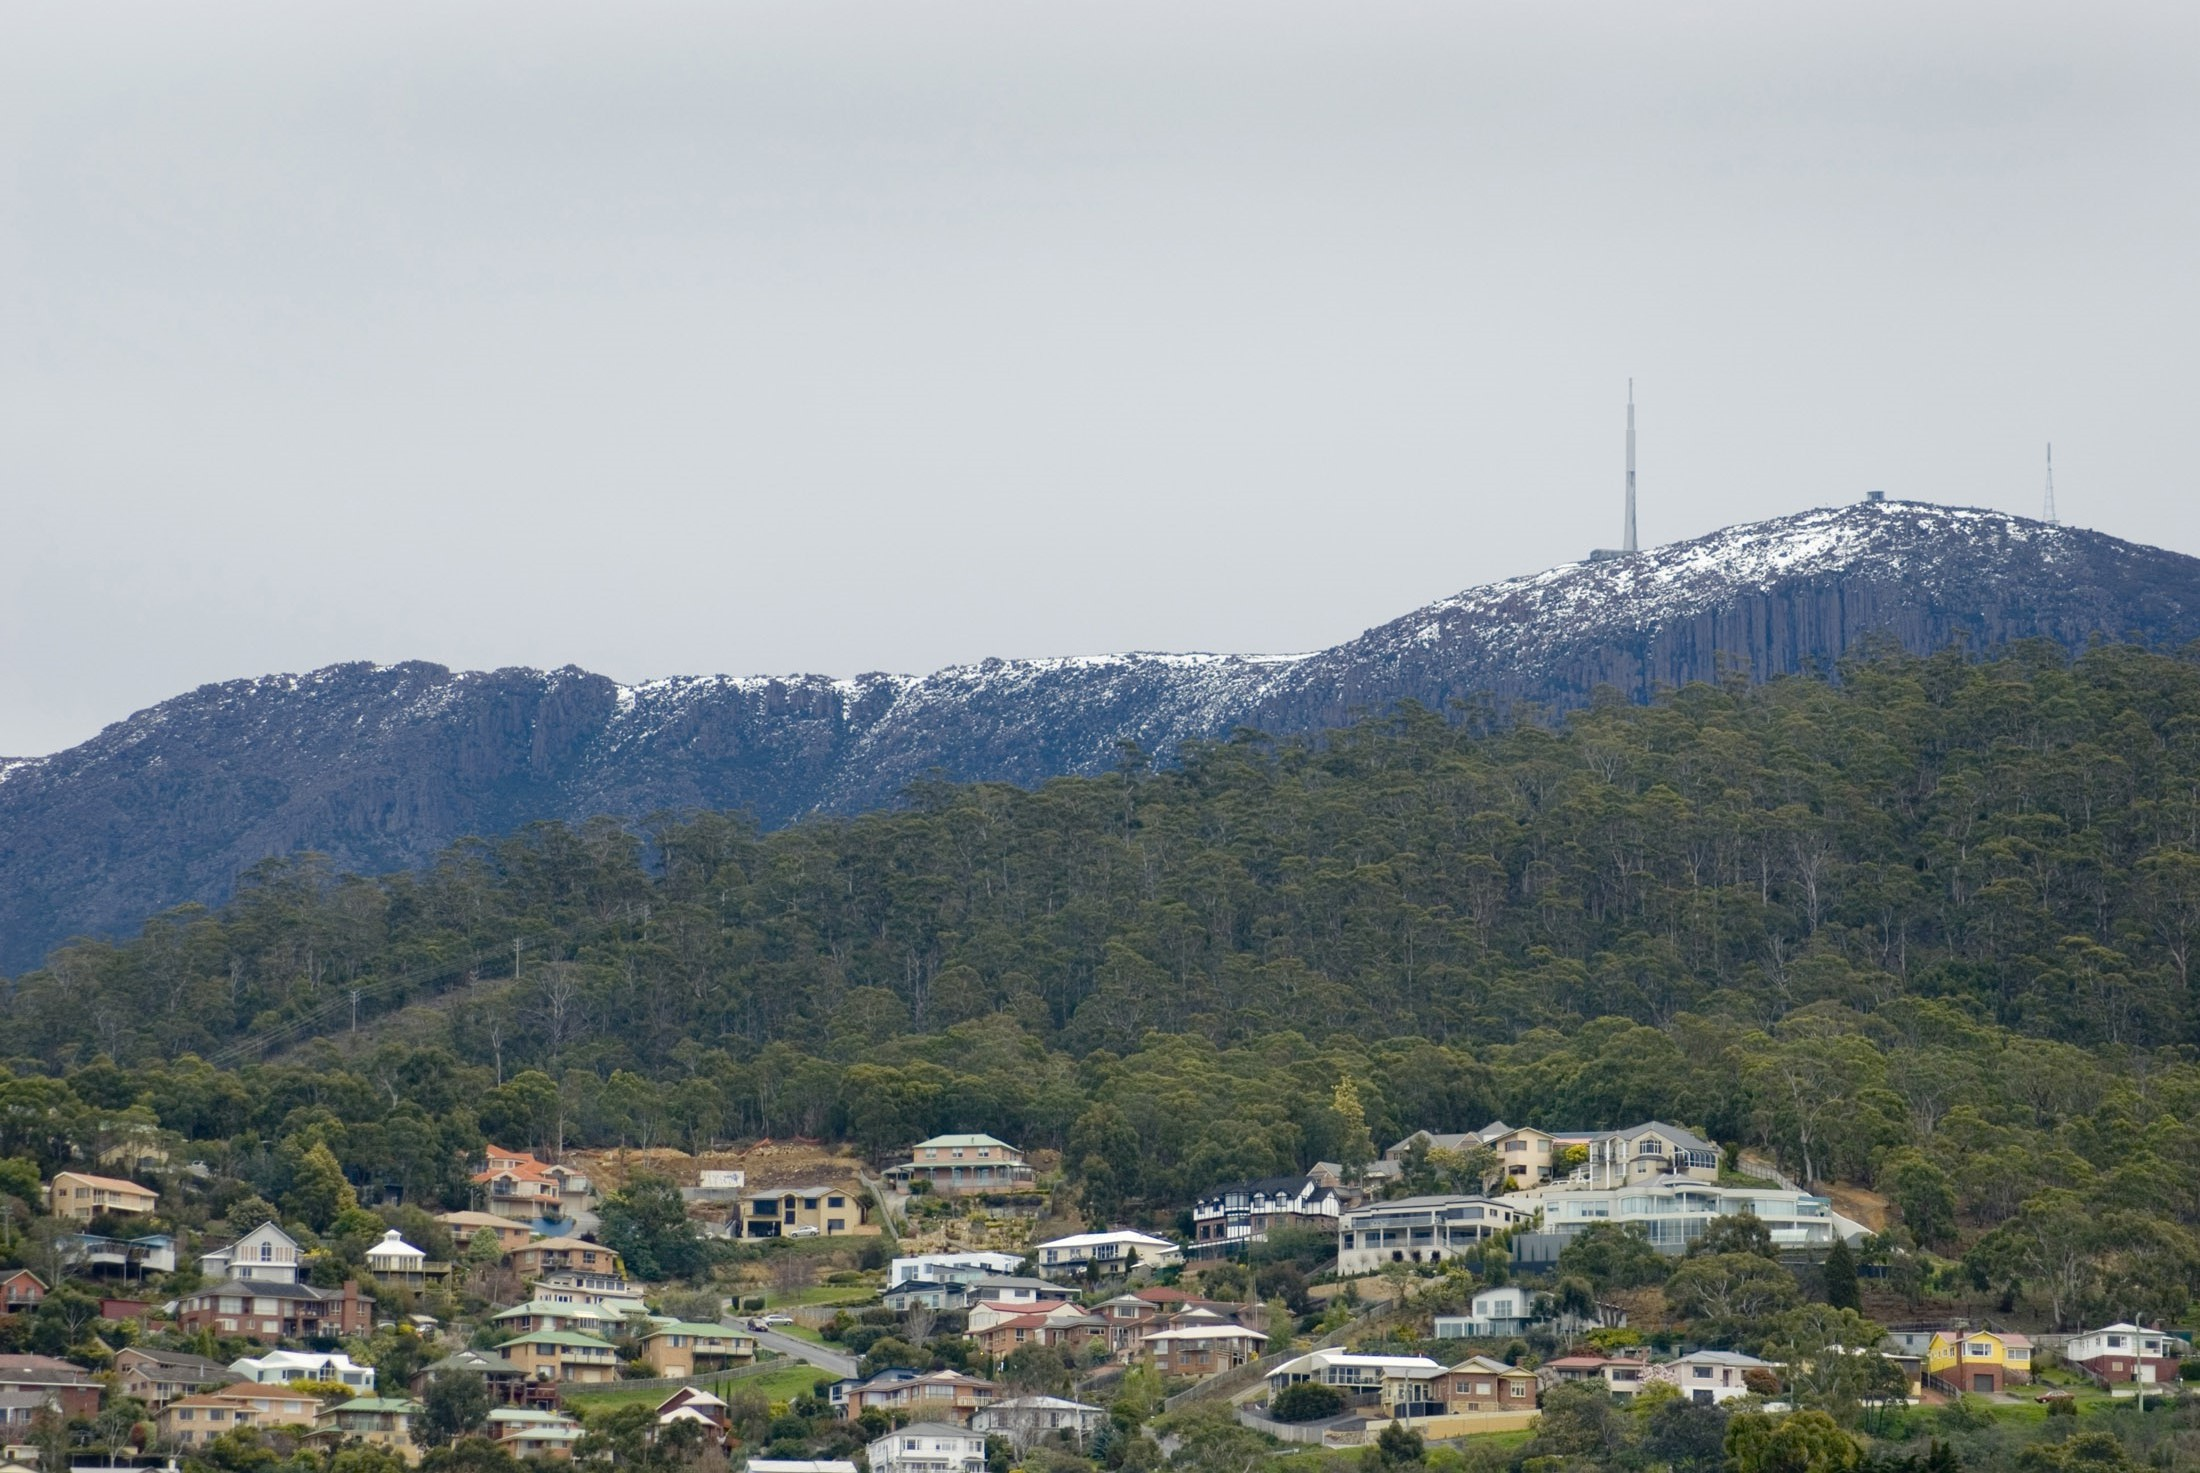 mount wellington and the organ pipes standing above the houses of hobart, tasmania